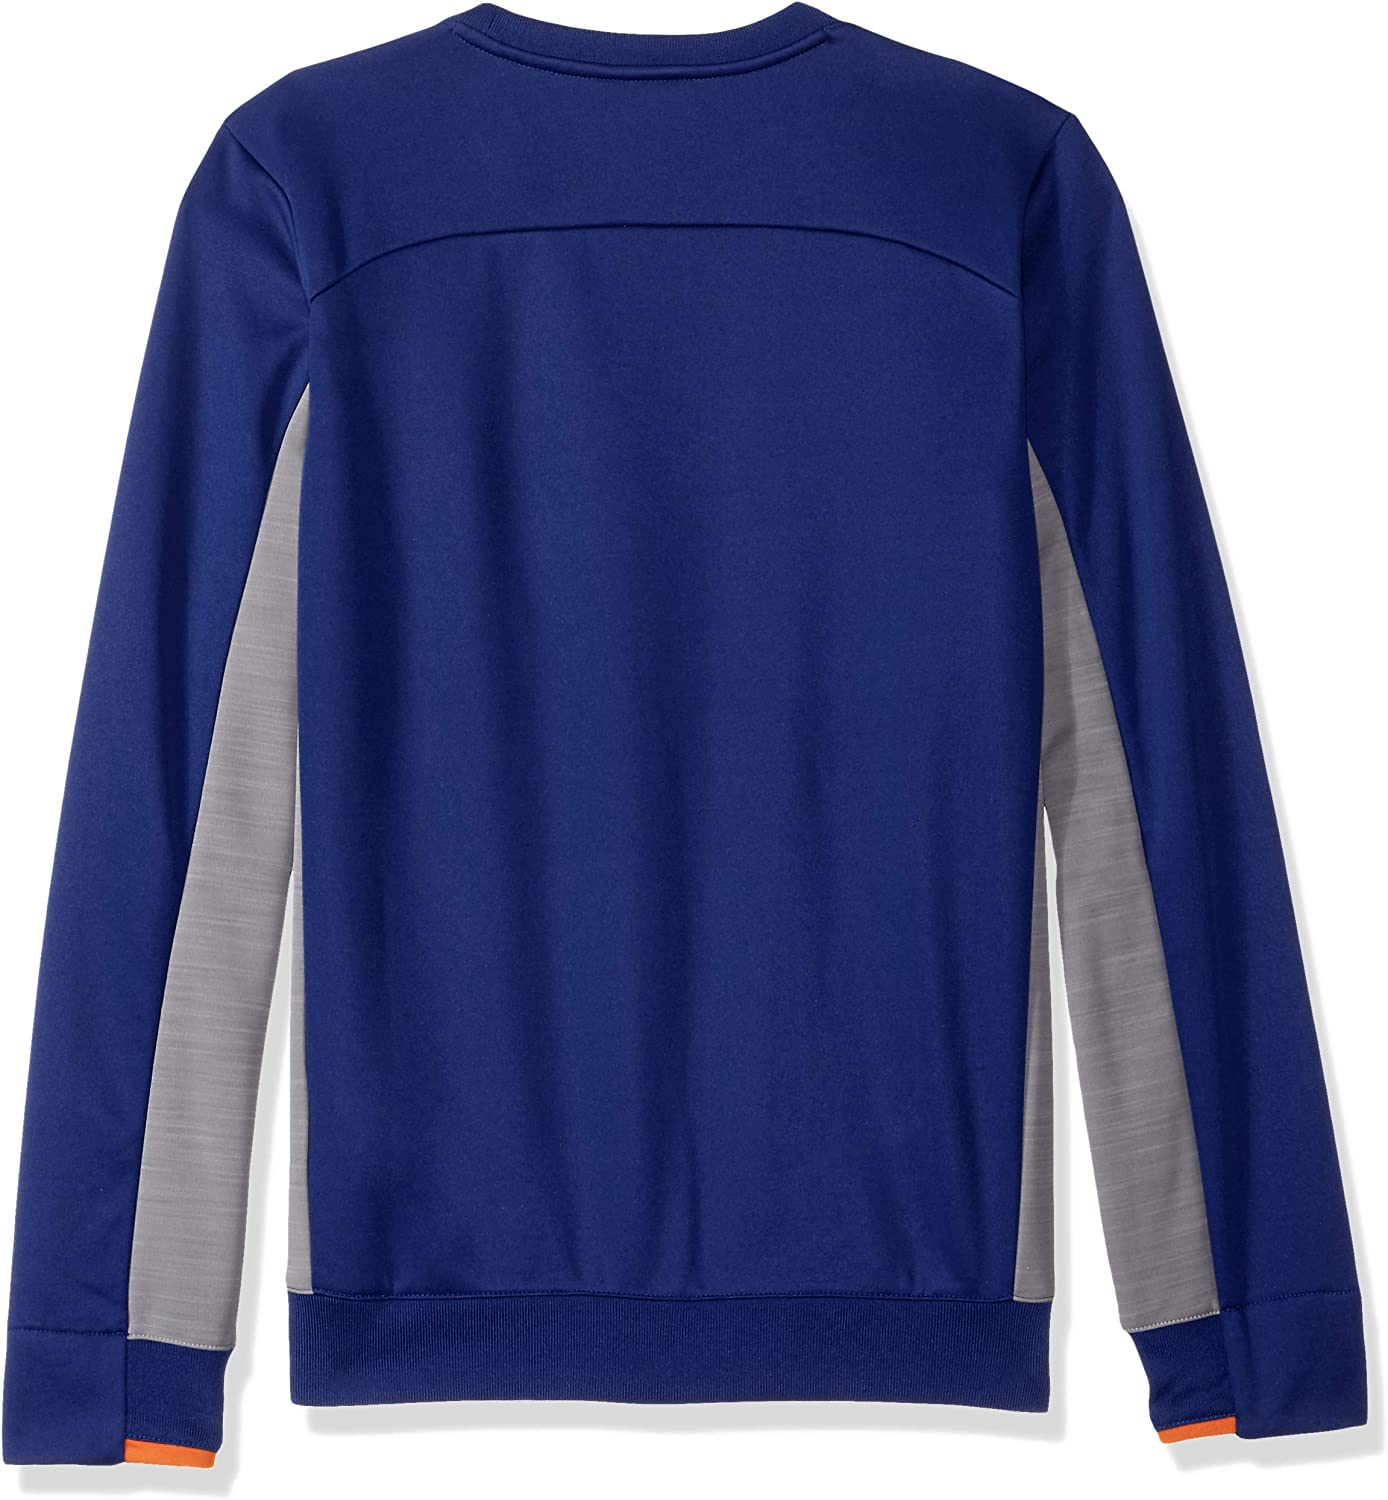 NBA by Outerstuff NBA Youth Boys Lay-up Long Sleeve Performance Pullover Top